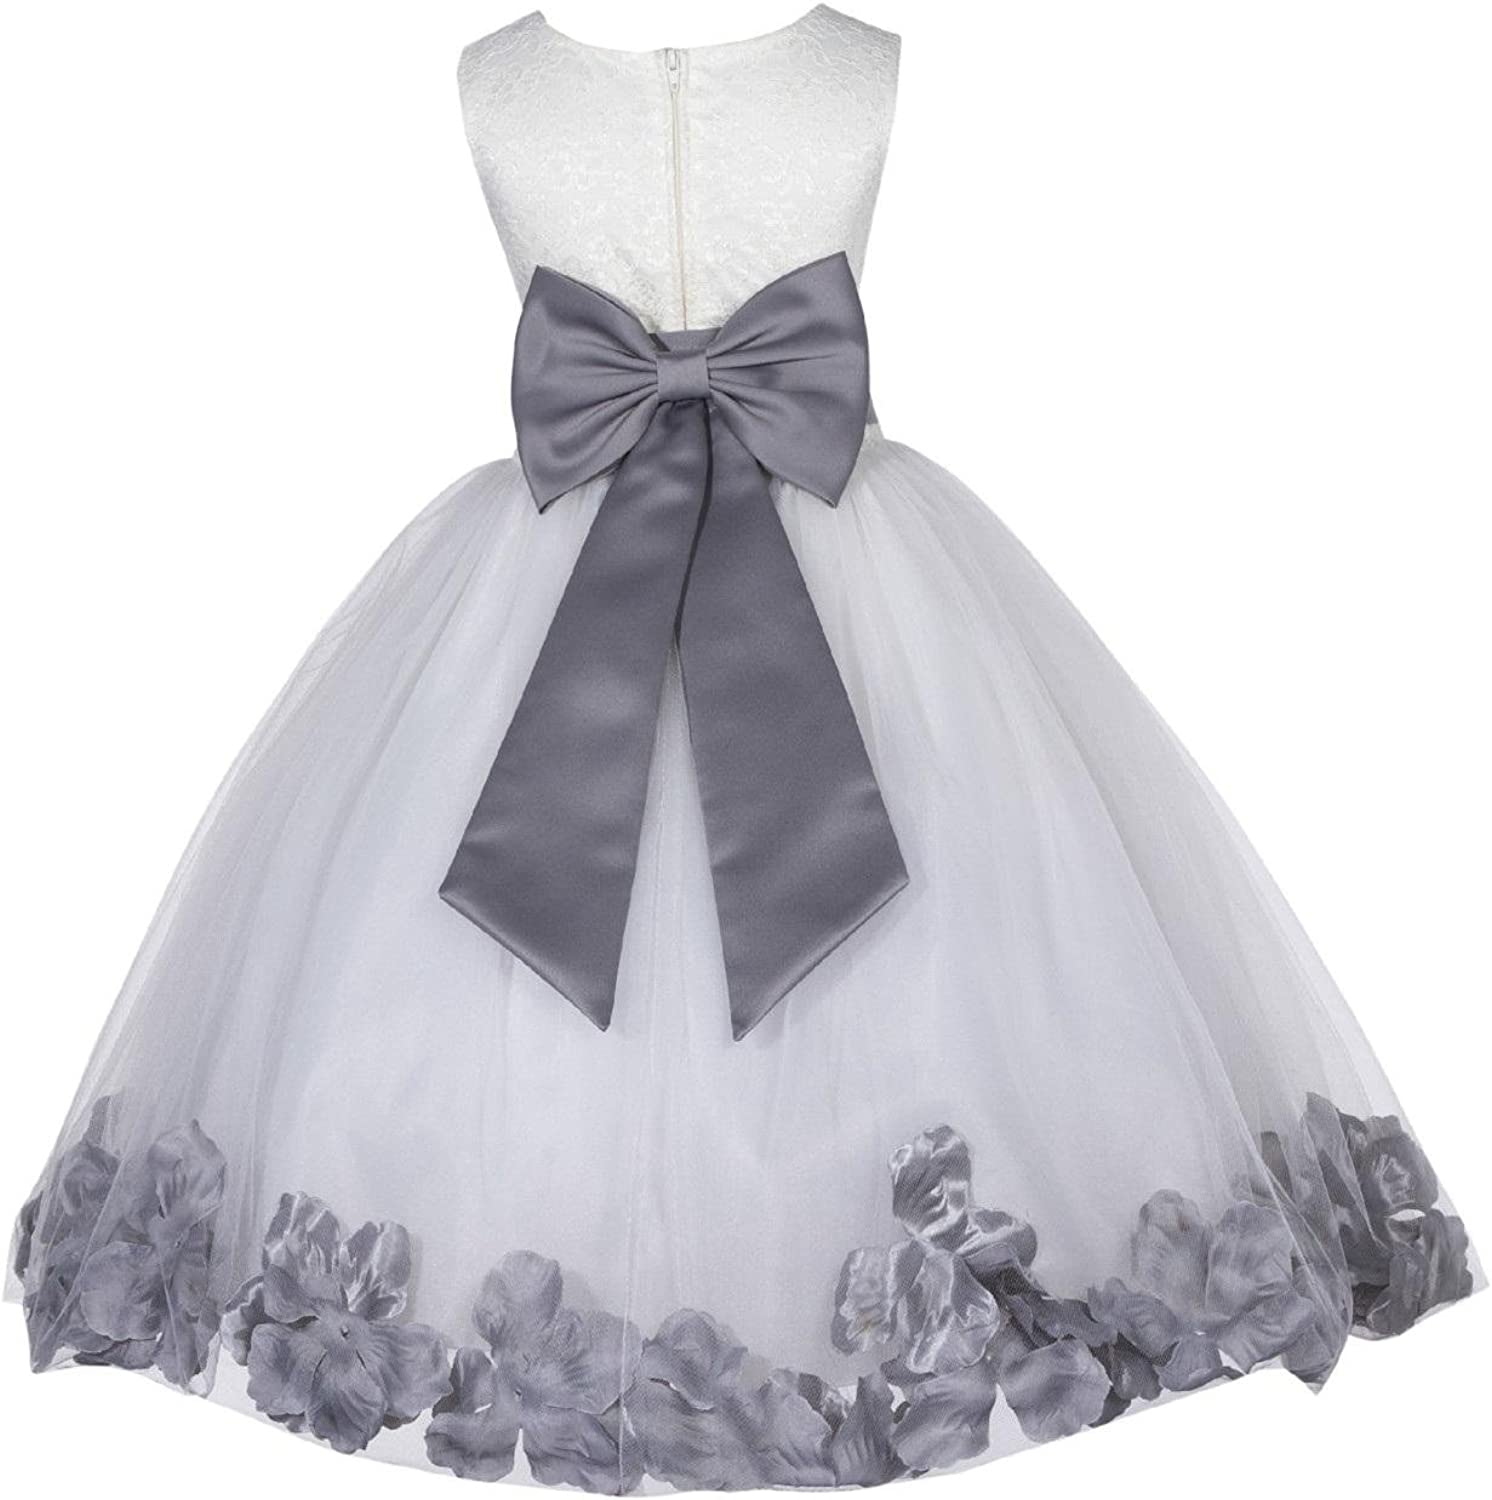 ekidsbridal Lace Floral 2021 spring and summer new Petals Ivory Milwaukee Mall Dress Girl Communion Flower